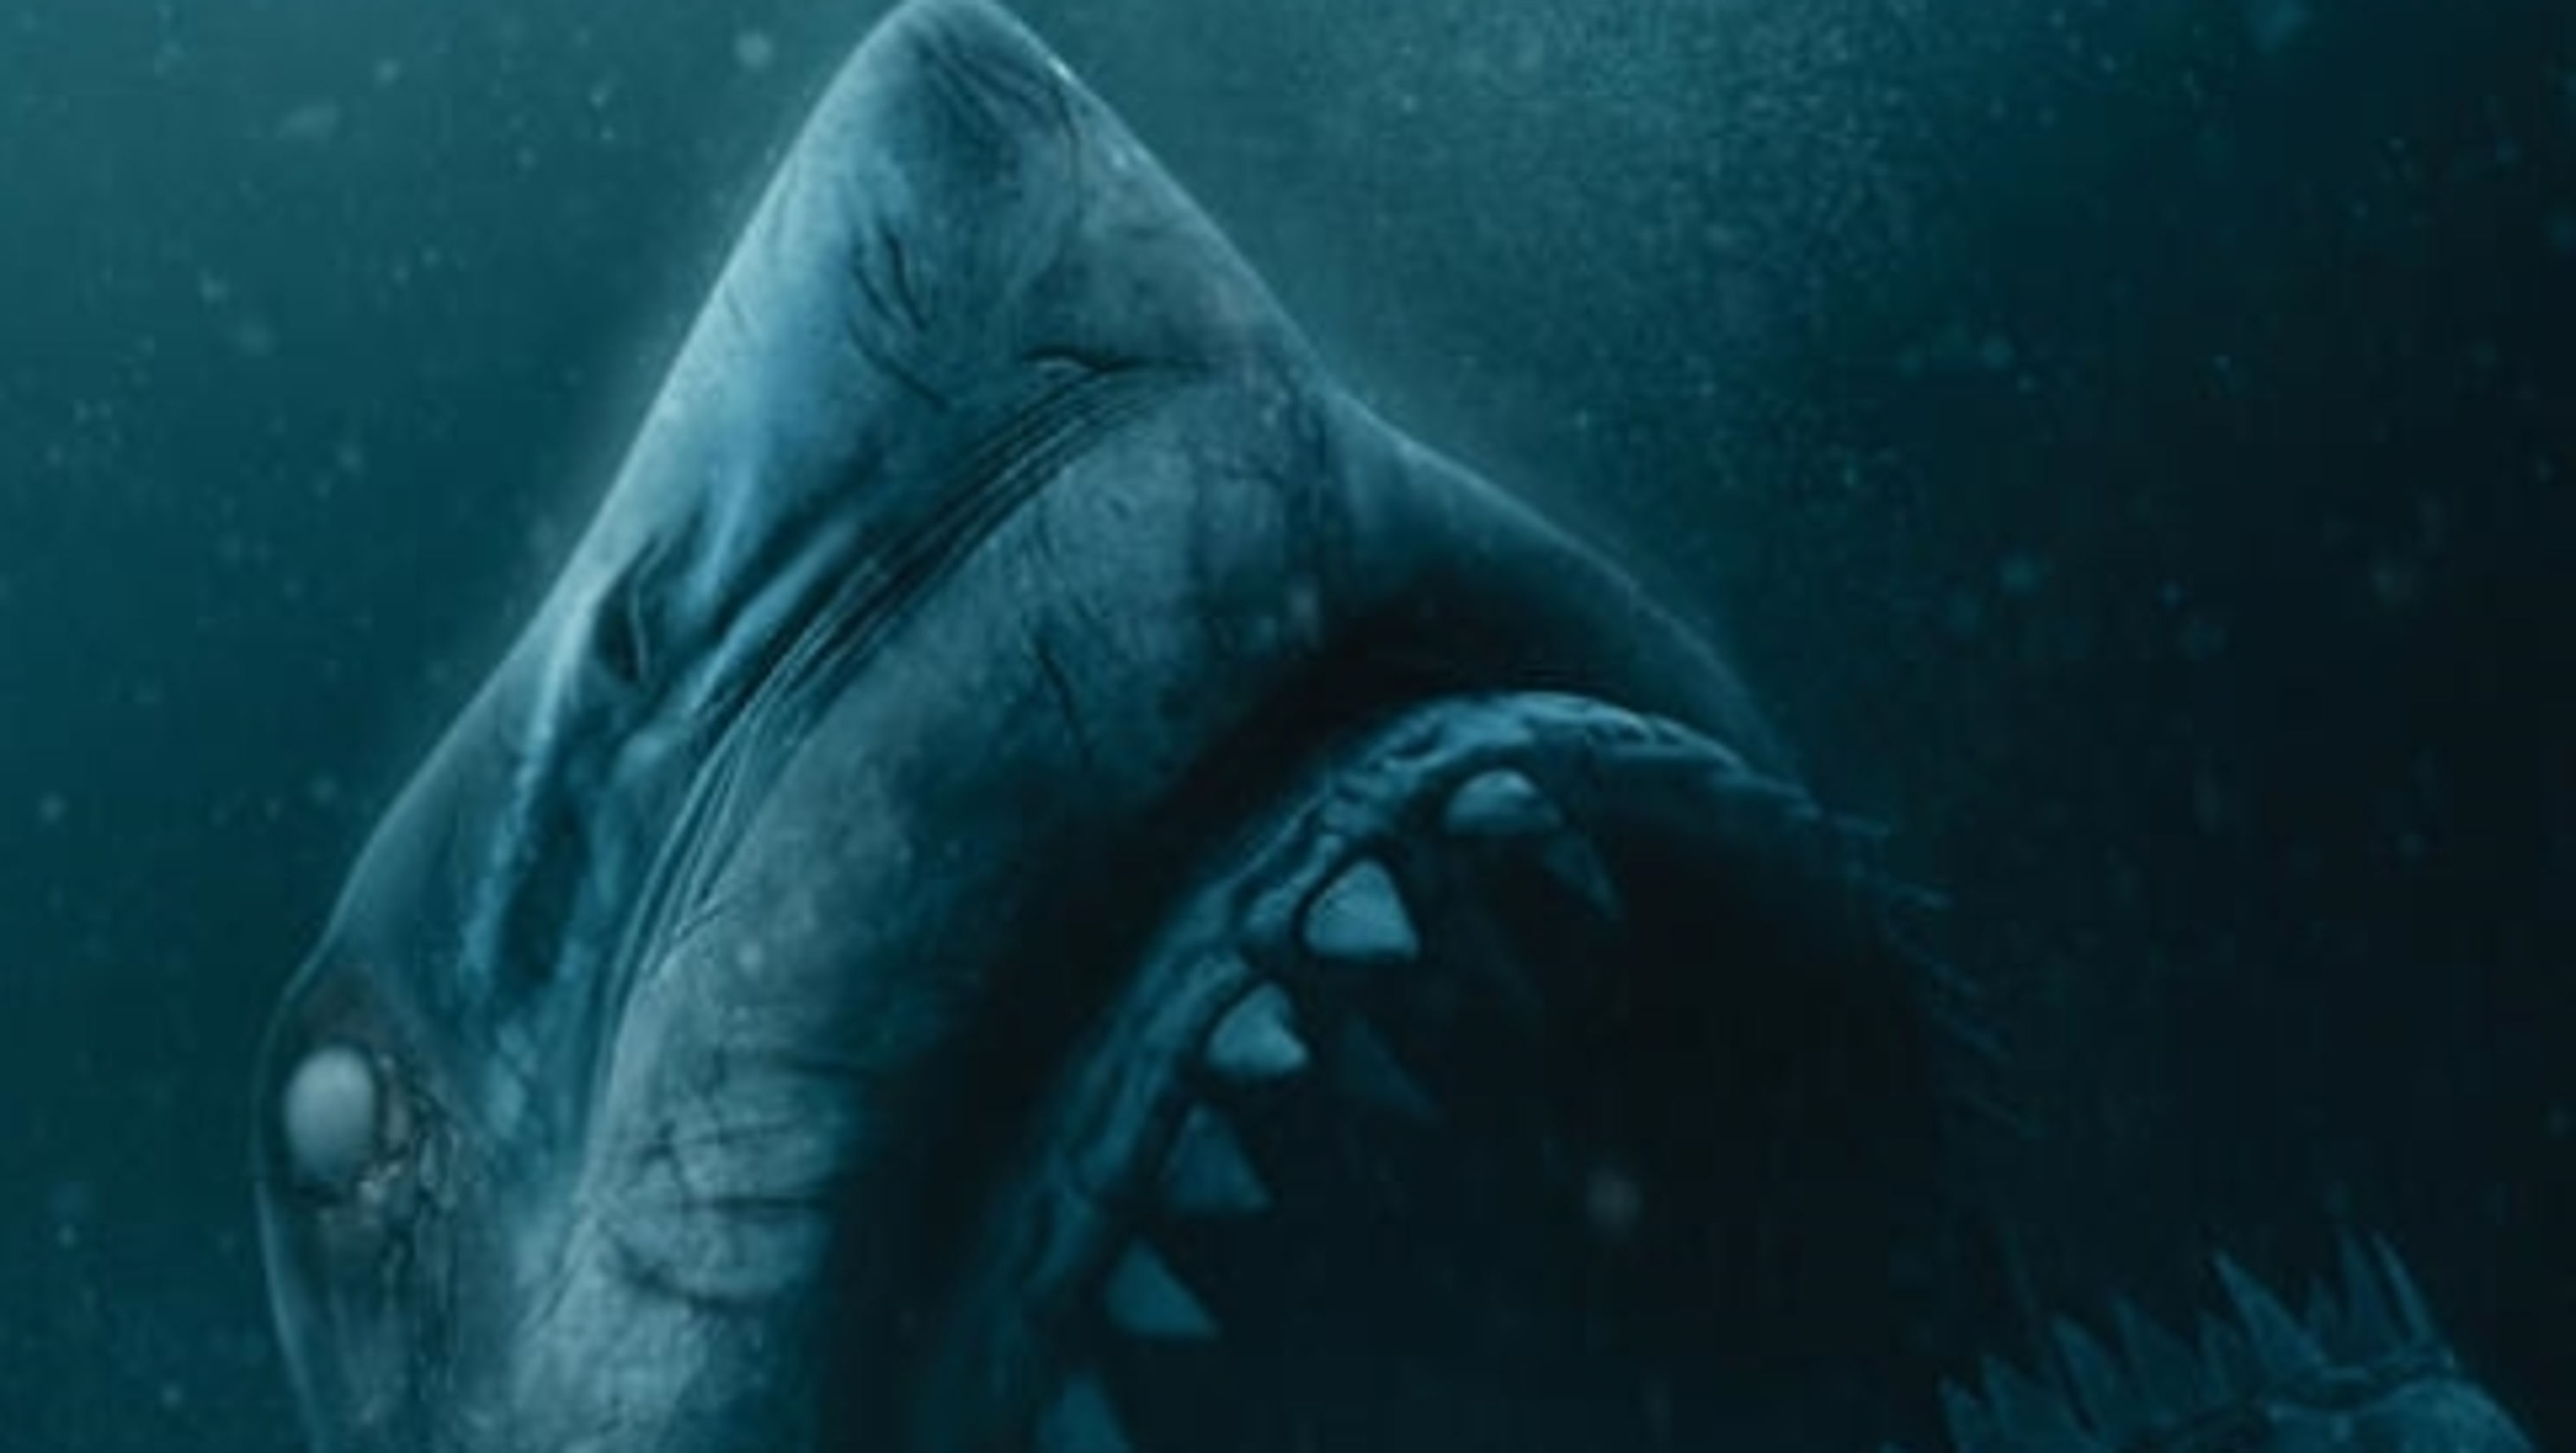 47 Meters Down: Uncaged' sharks bite into our summer villain